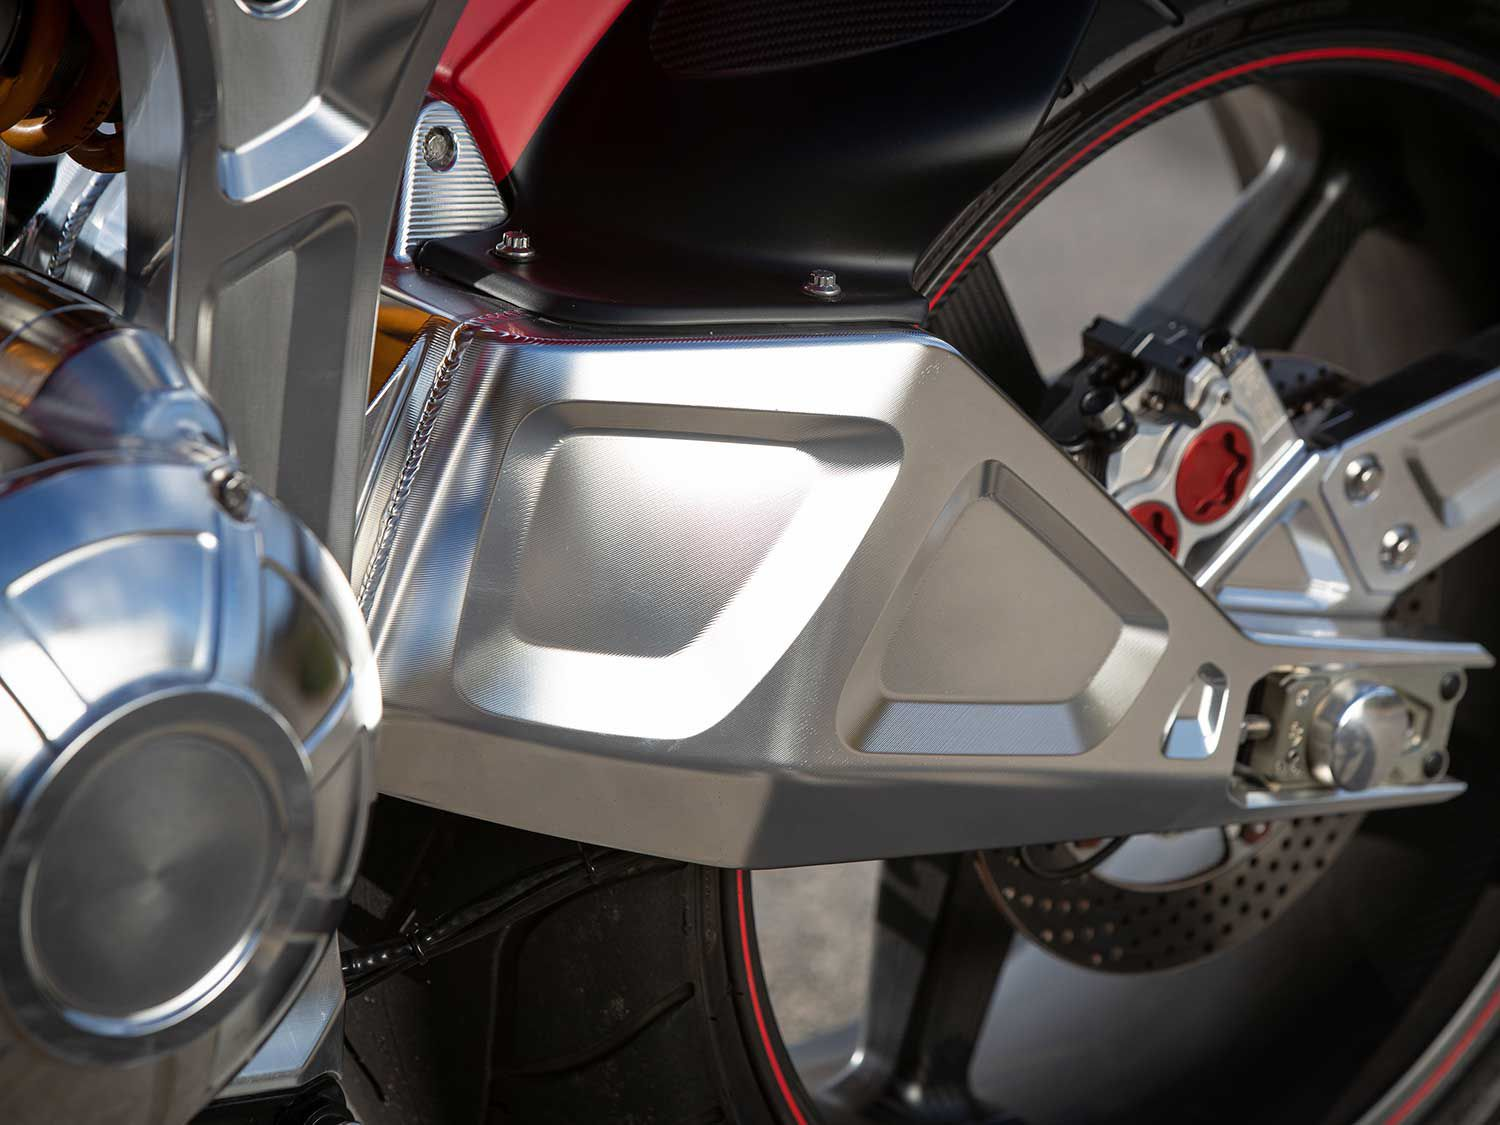 The new billet aluminum swingarm on the KRGT-1 is designed and manufactured by Arch, increases rigidity, and reduces unsprung weight.